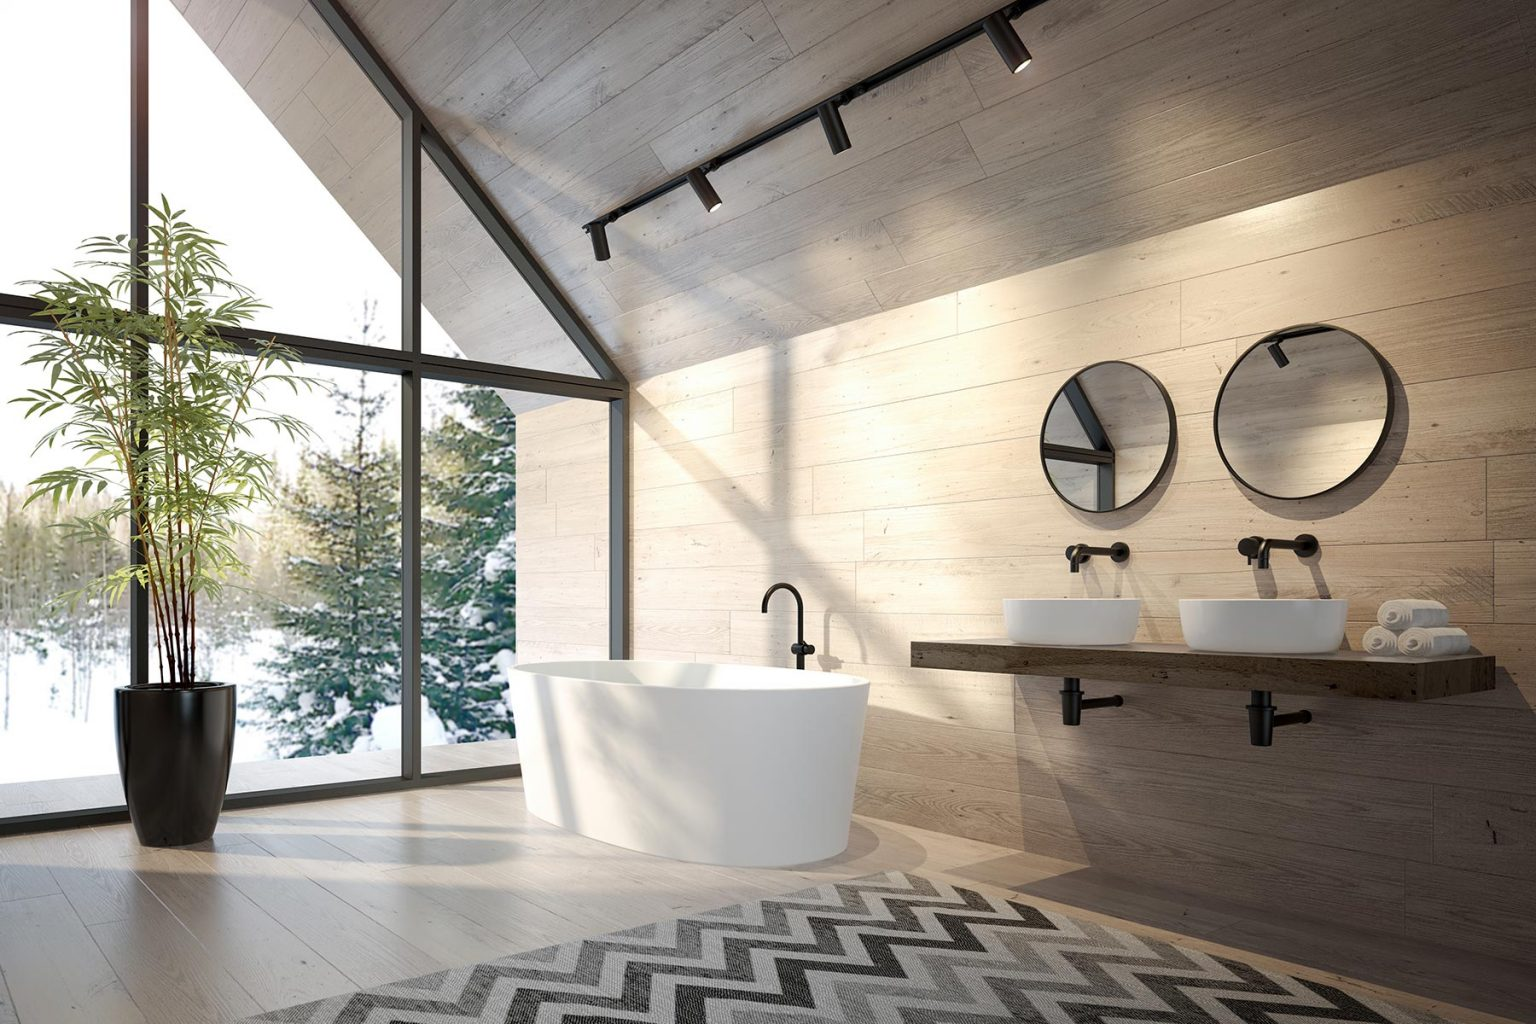 interior-bathroom-of-a-forest-house-3d-rendering-5DZ6ARQ.jpg